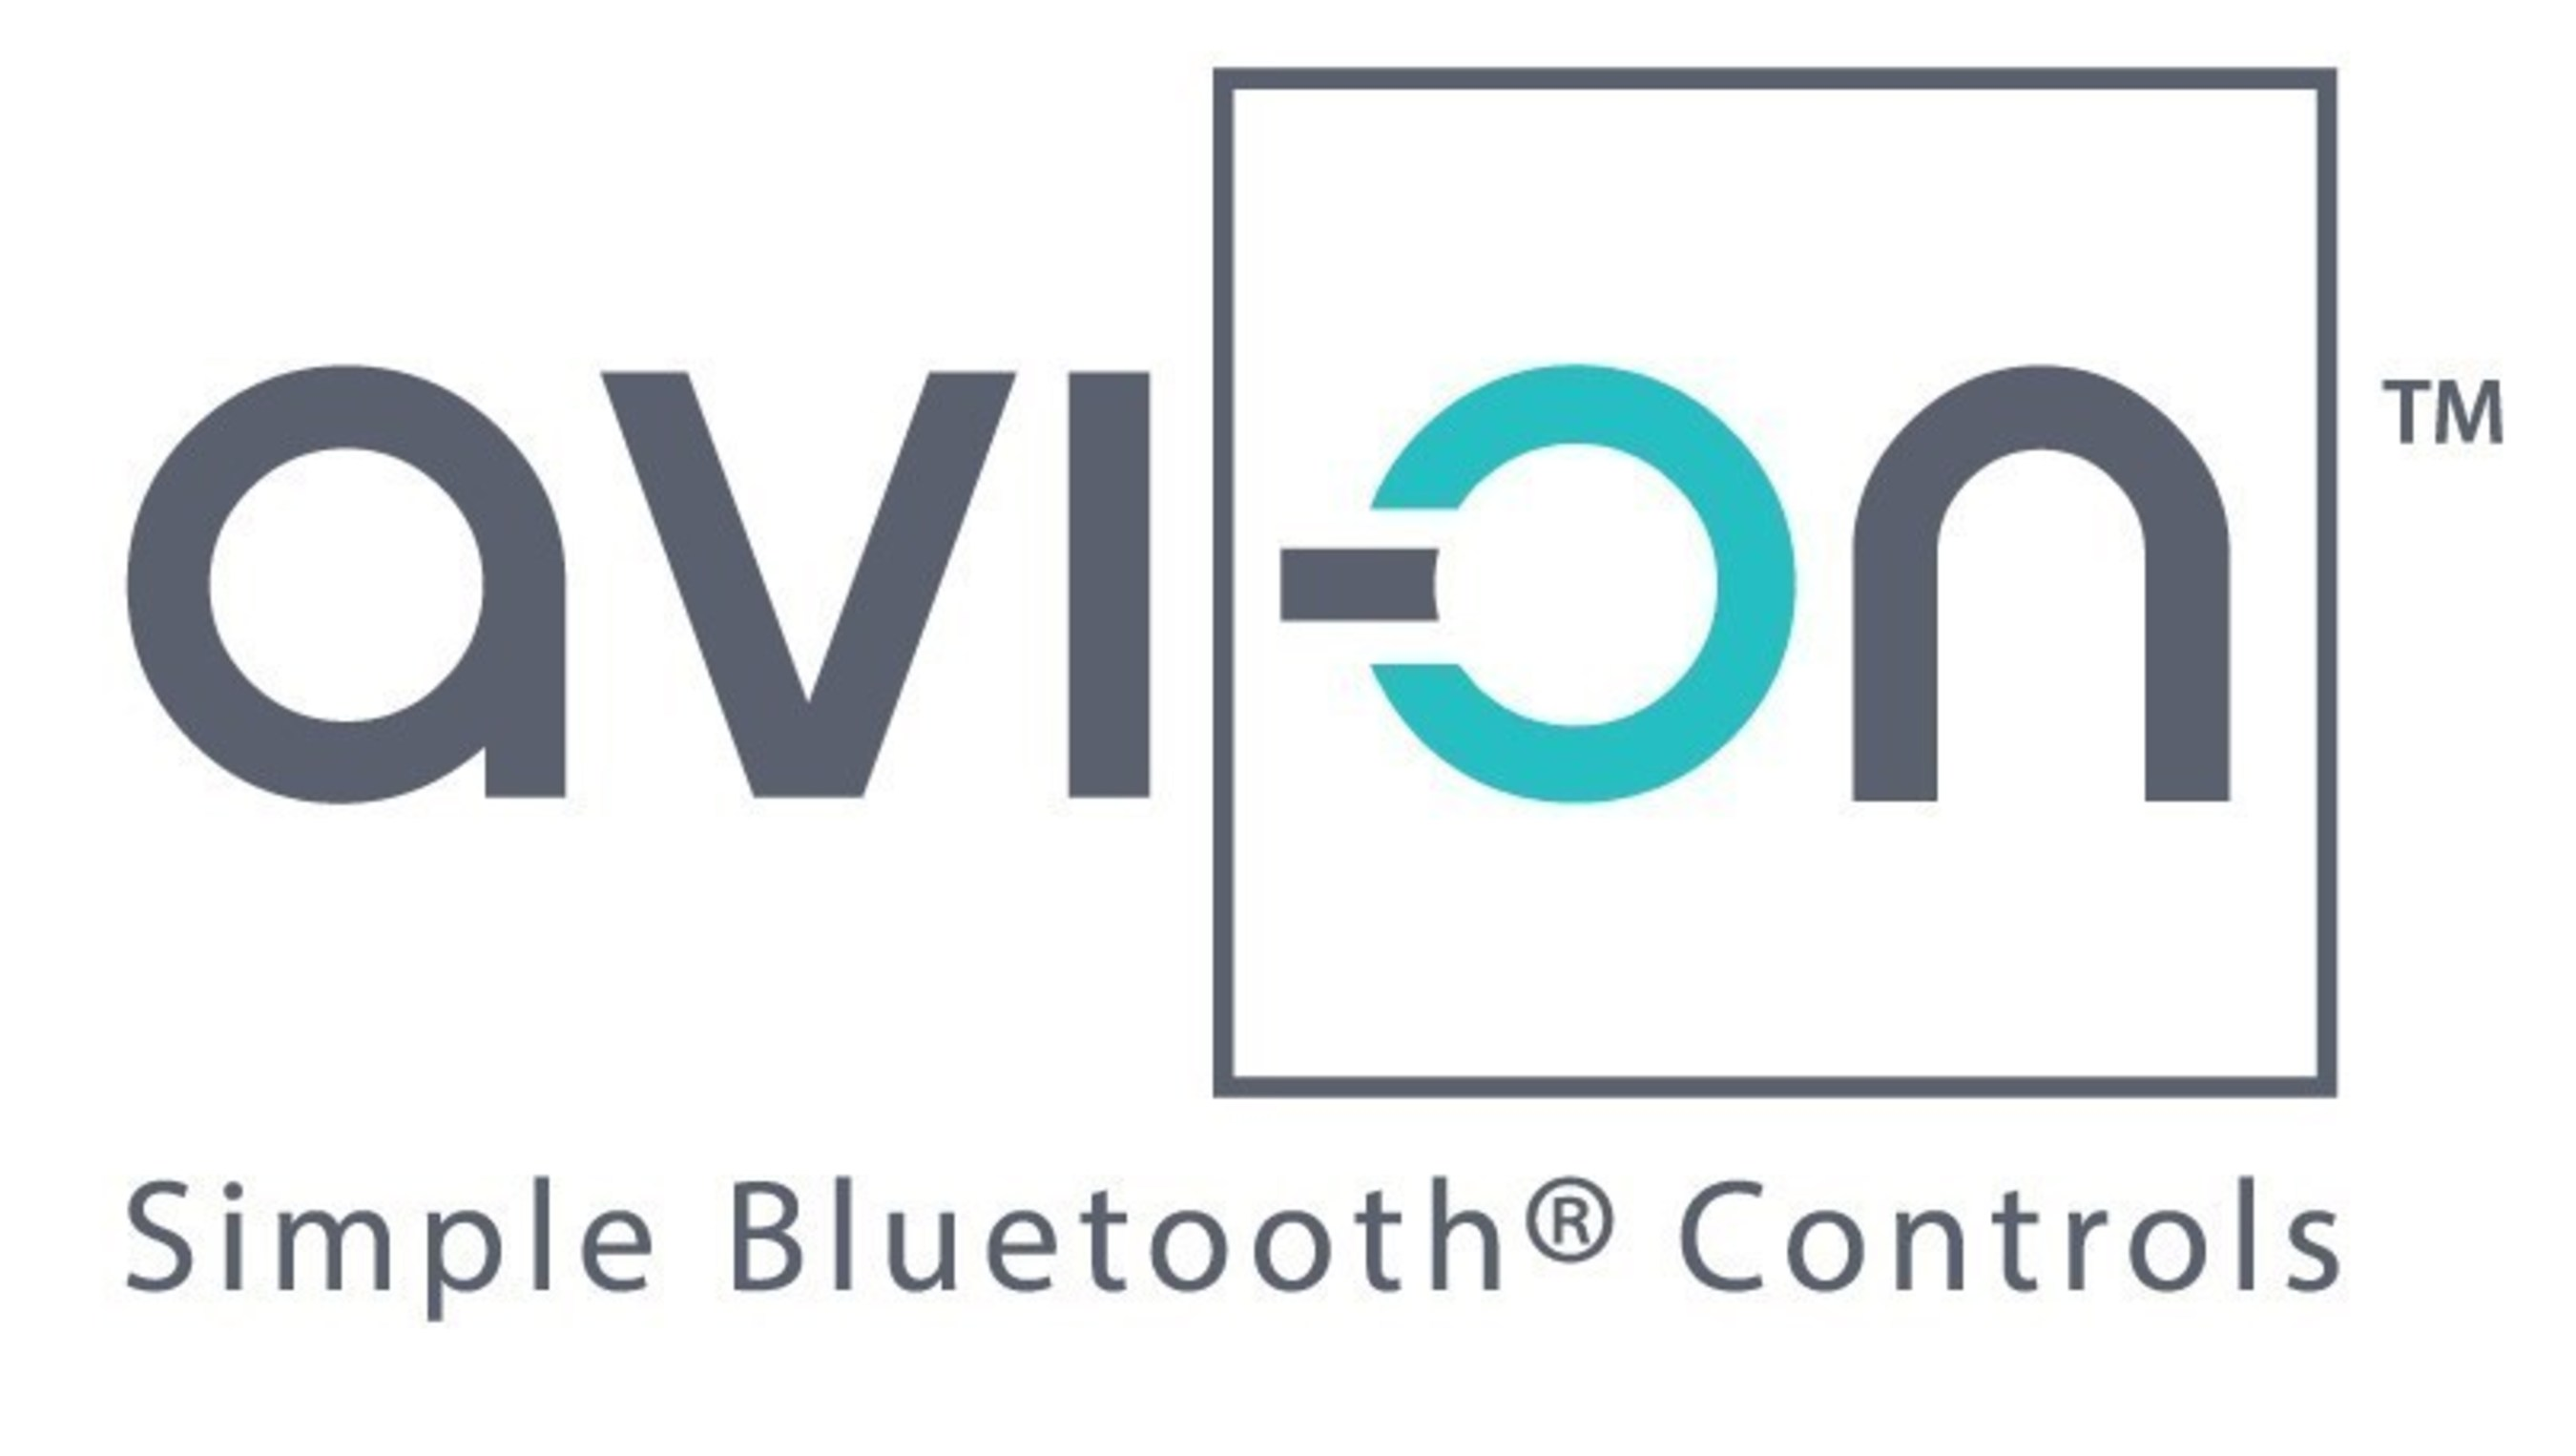 Avi-on Bluetooth Smart Mesh Controls is the largest growing lighting ecosystem in the world. Replace wires with software, and add-a-switch anywhere with our plug-and-play technology for manufacturers.